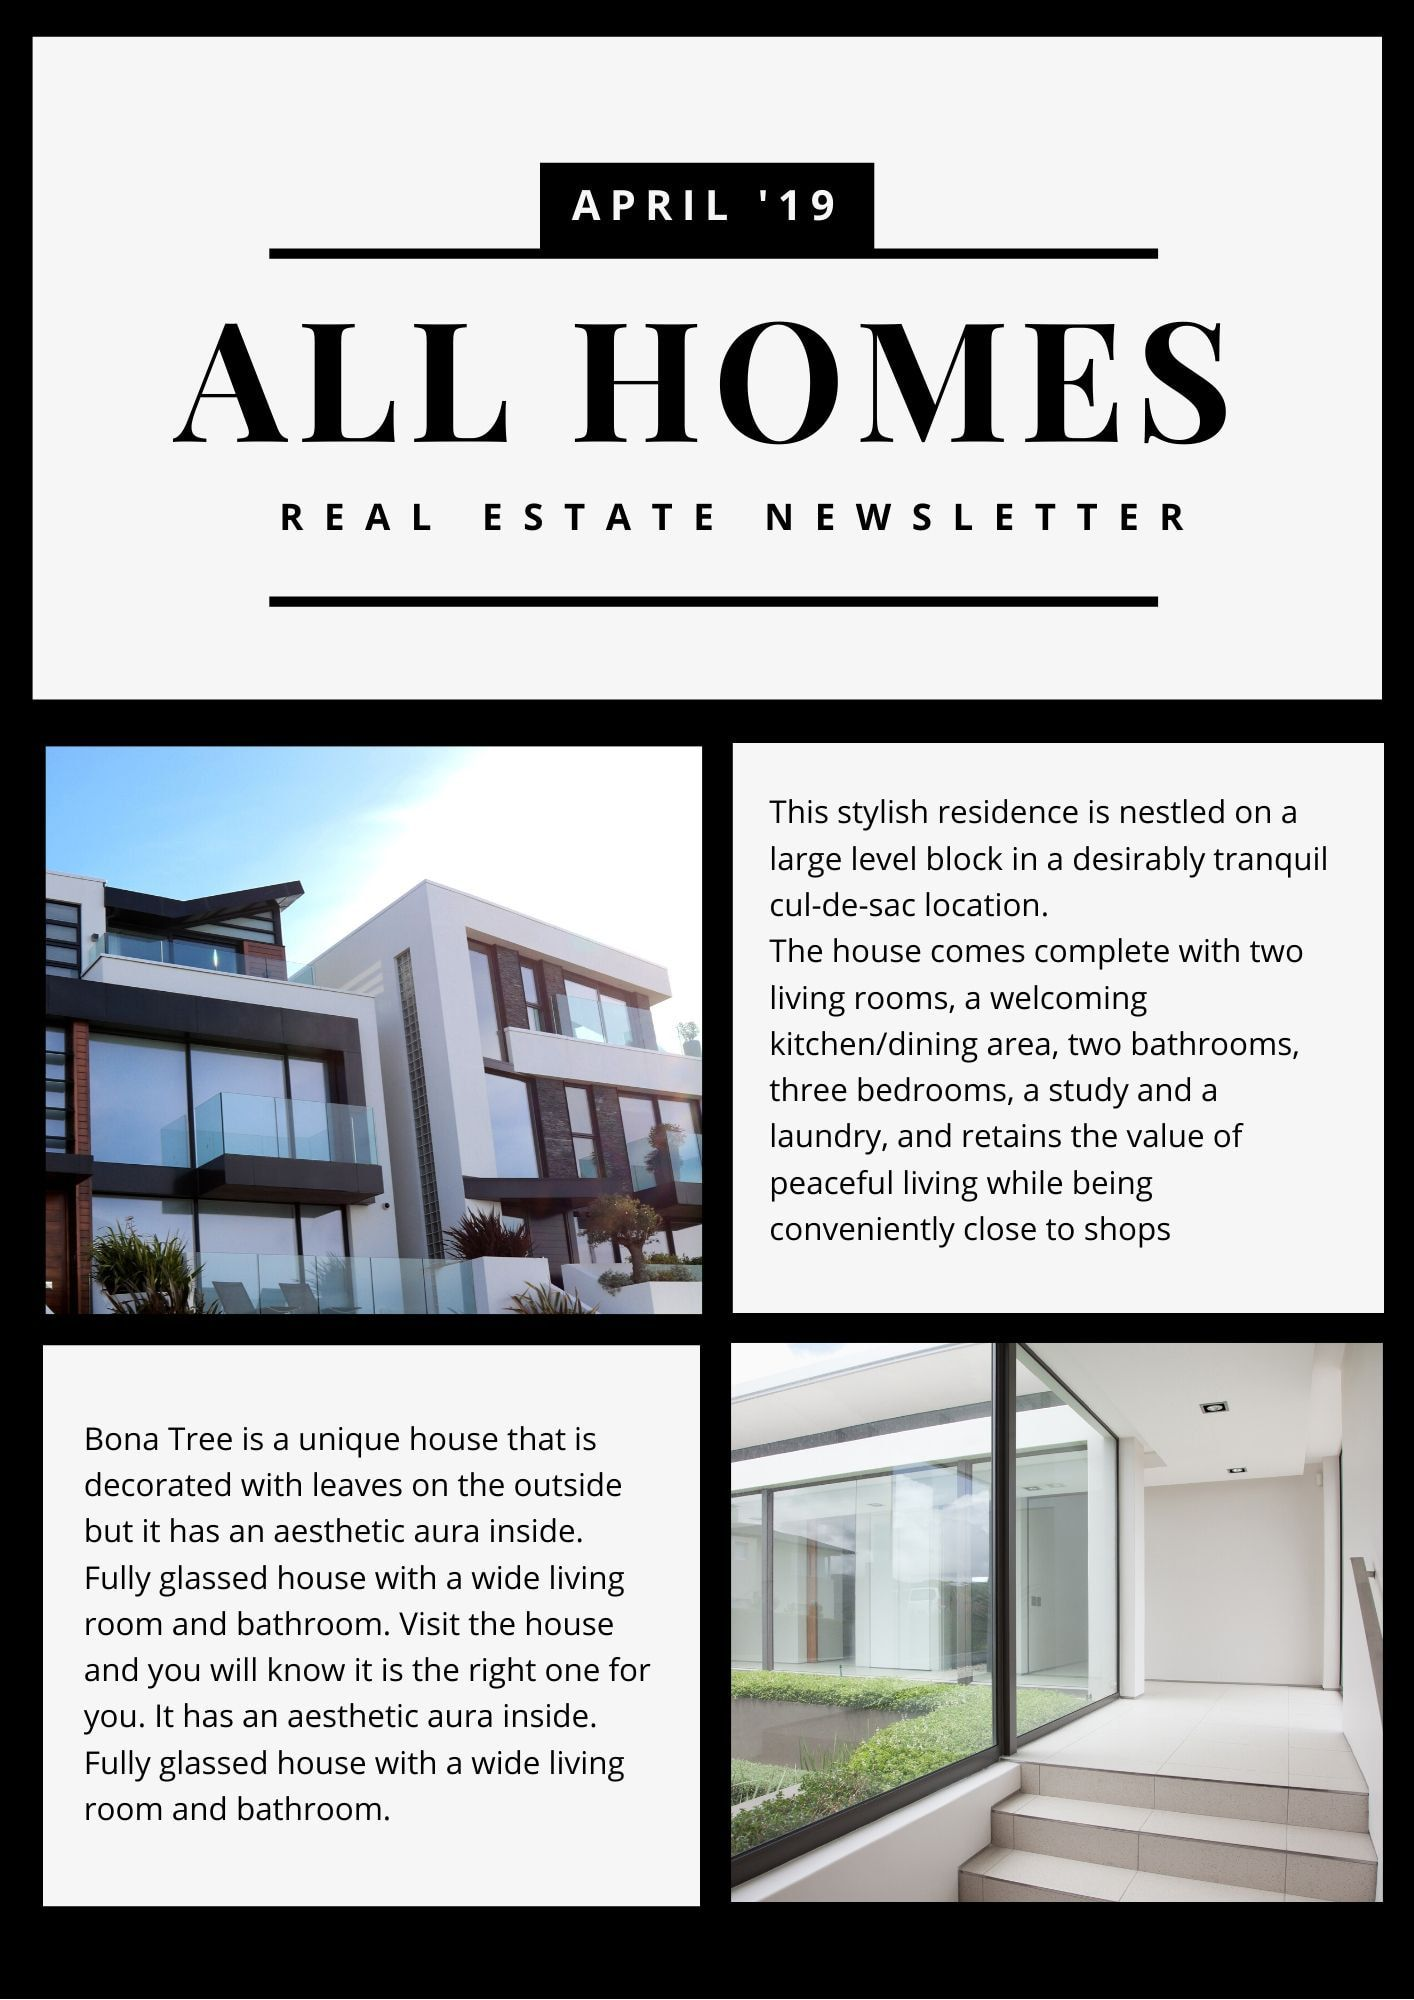 006 Excellent Real Estate Newsletter Template Example  Templates Free Printable BestFull